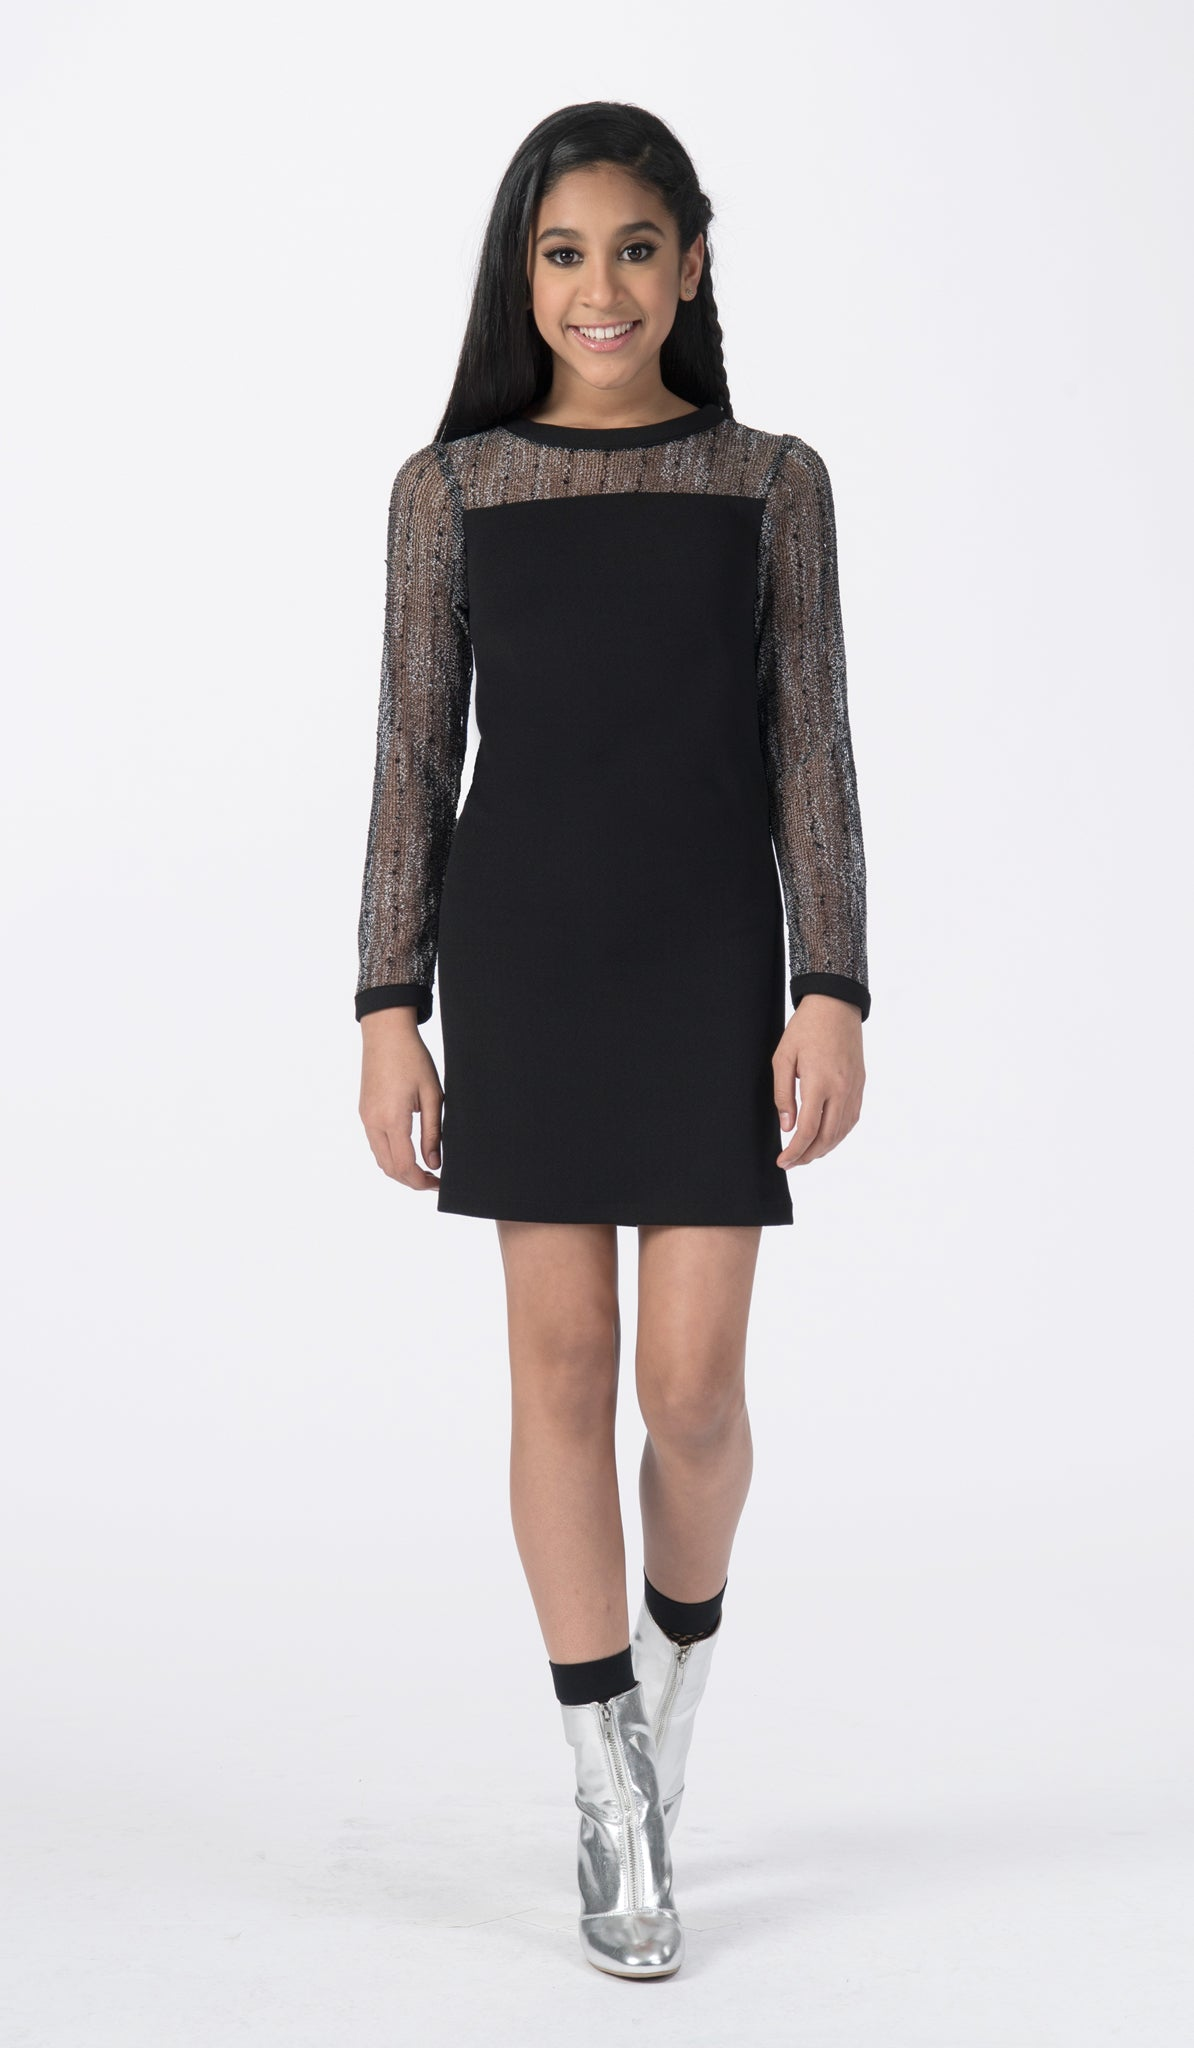 Black dress with mesh long sleeves and neckline front view